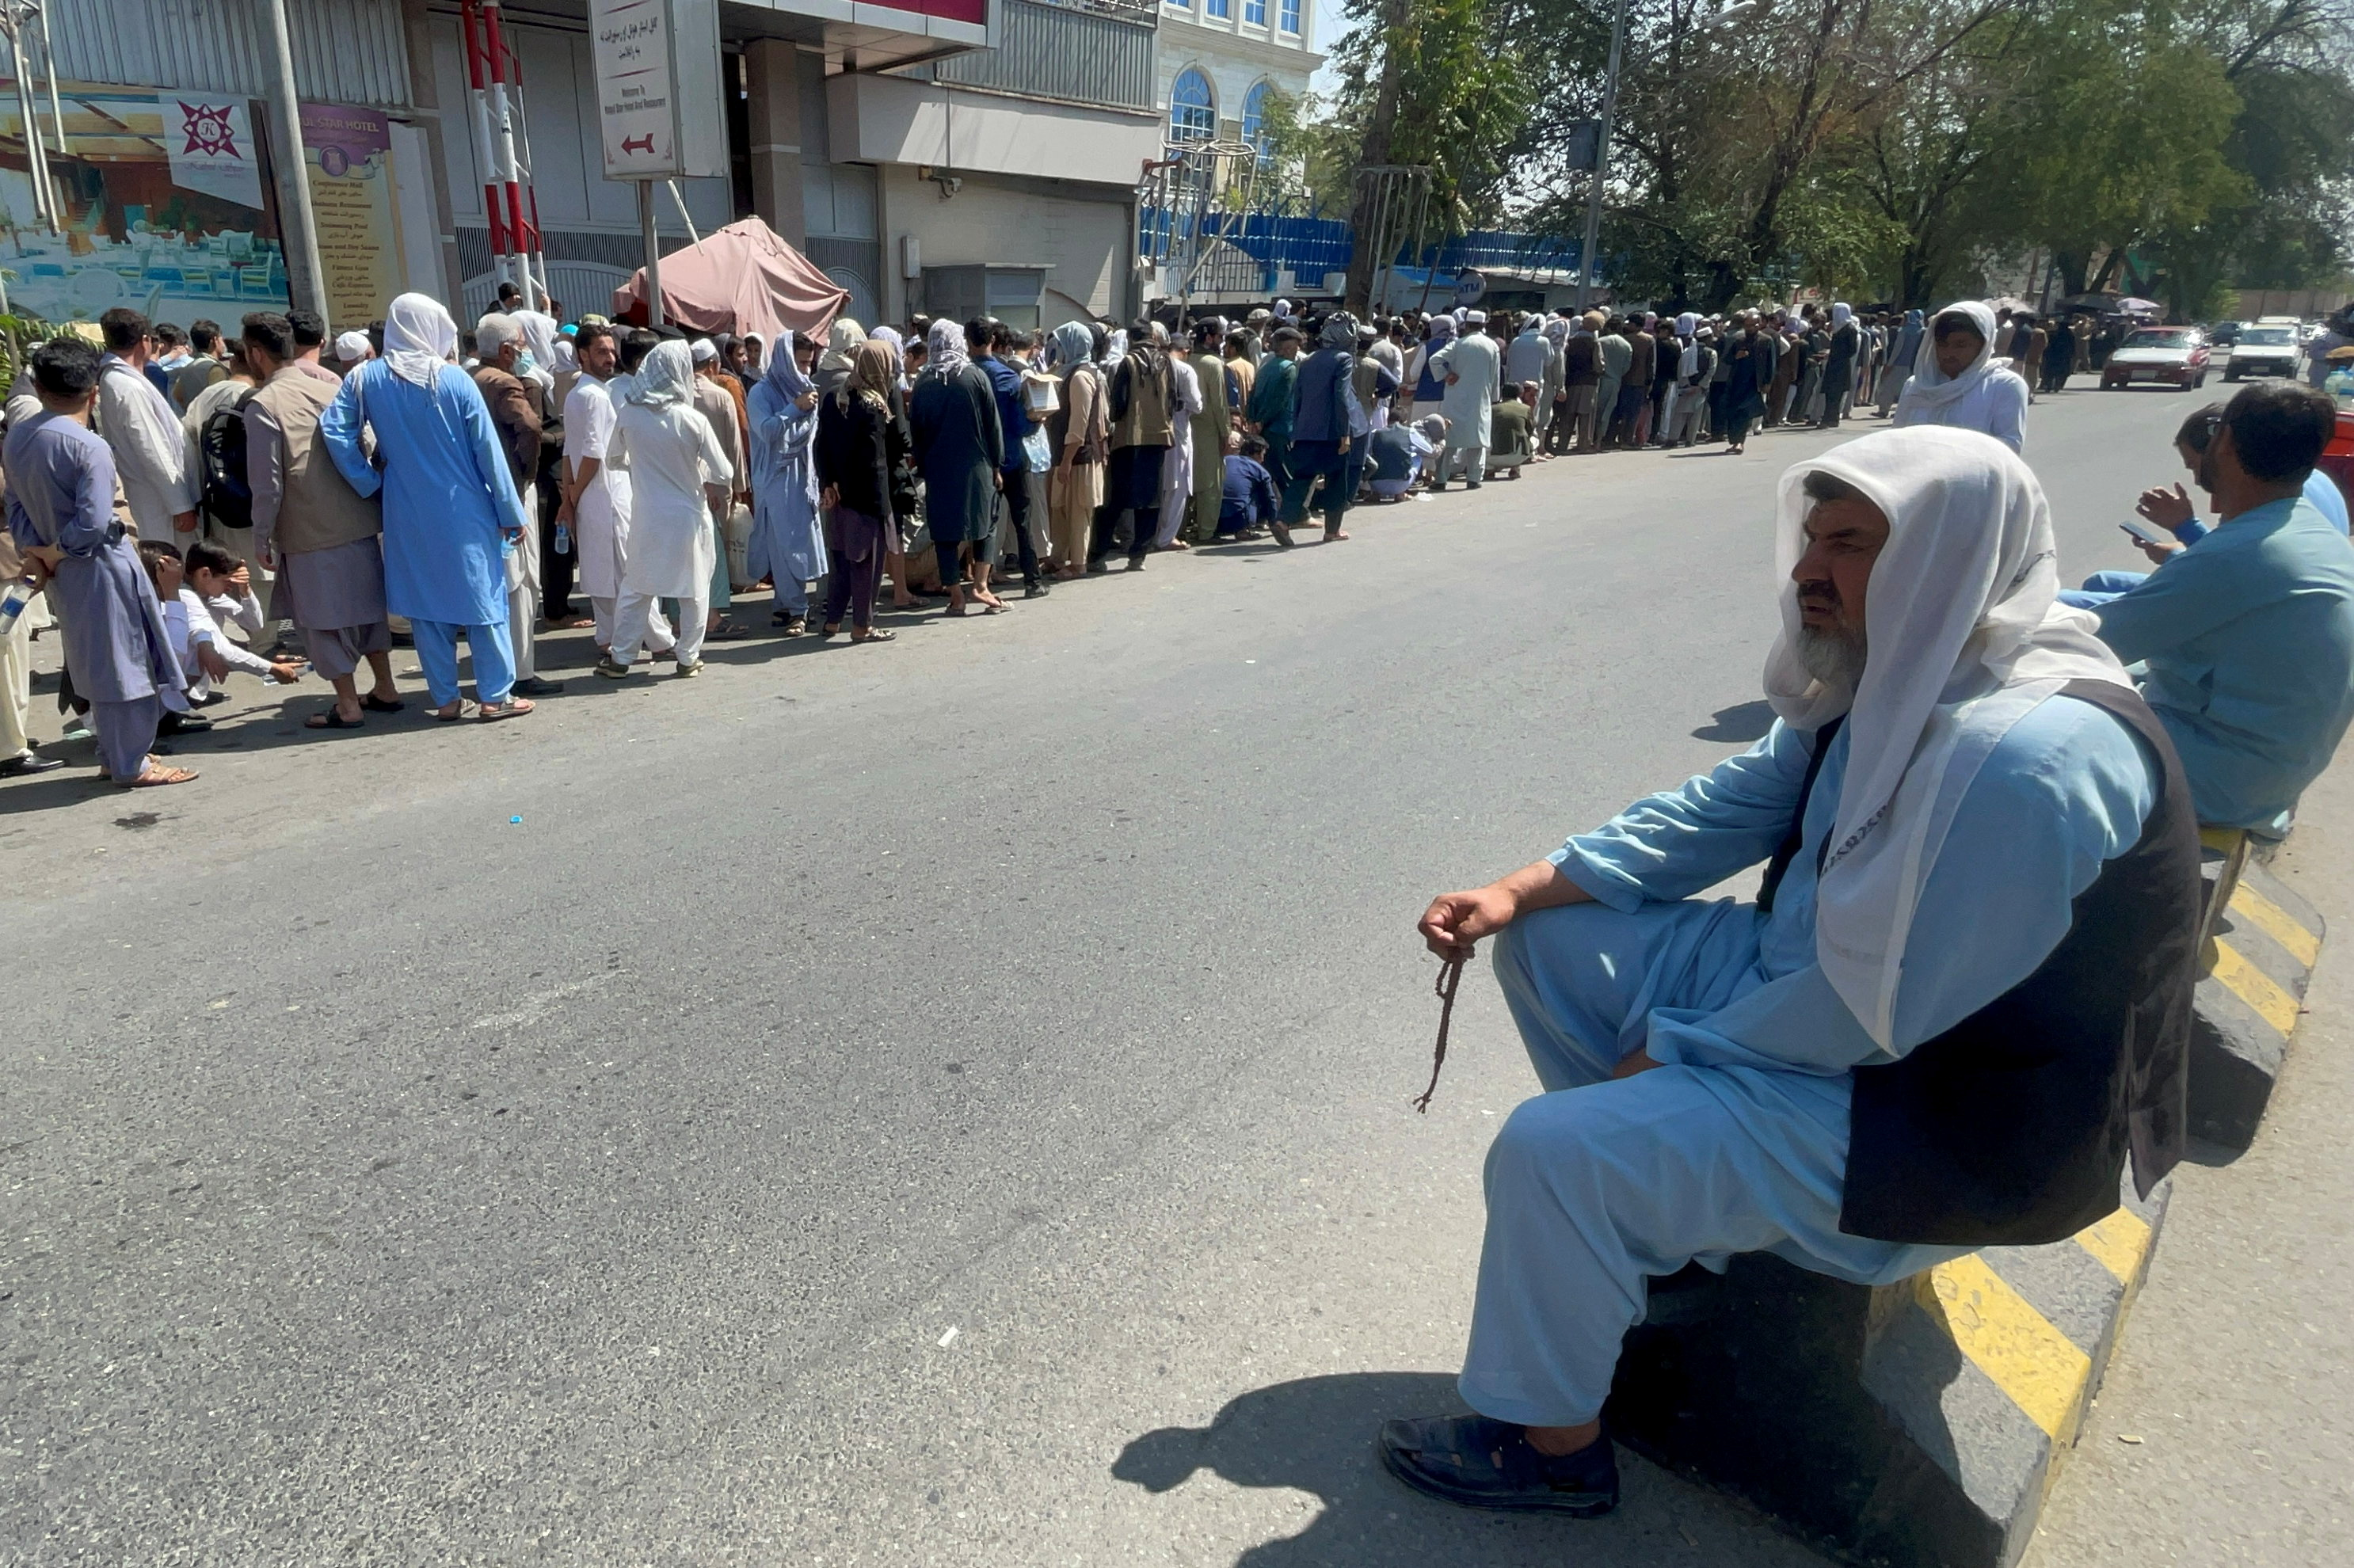 Afghans line up outside a bank to take out their money after Taliban takeover in Kabul, Afghanistan September 1, 2021. REUTERS/Stringer